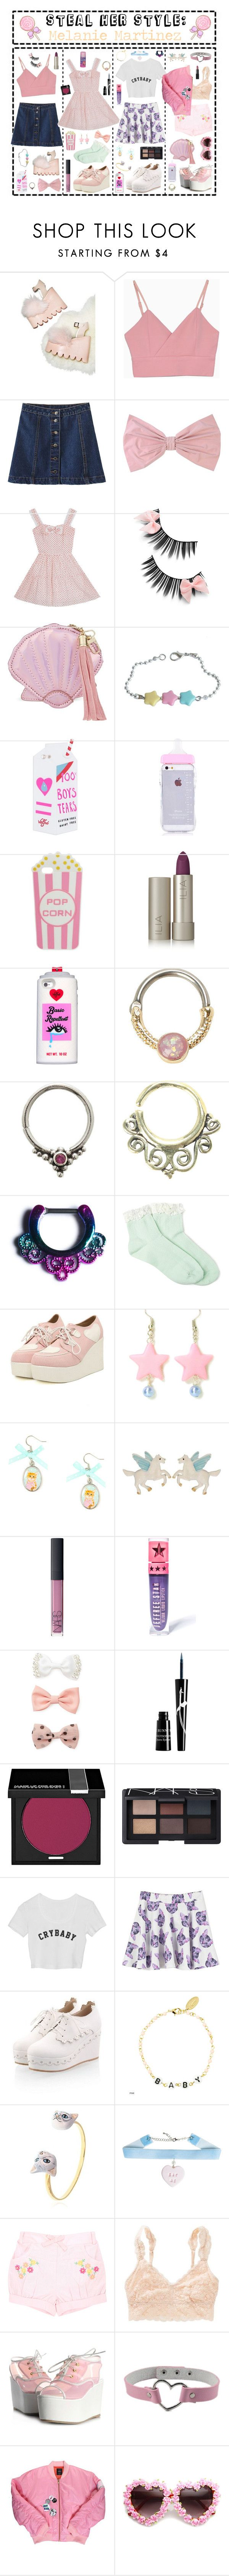 """""""- ̗̀ Steal Her Style: Melanie Martinez  ̖́-"""" by i-get-a-little-bit-breathless ❤ liked on Polyvore featuring Current Mood, PINK BOW, Skinnydip, Valfré, Ilia, Forever 21, NARS Cosmetics, Jeffree Star, Rouge Bunny Rouge and MAKE UP FOR EVER"""